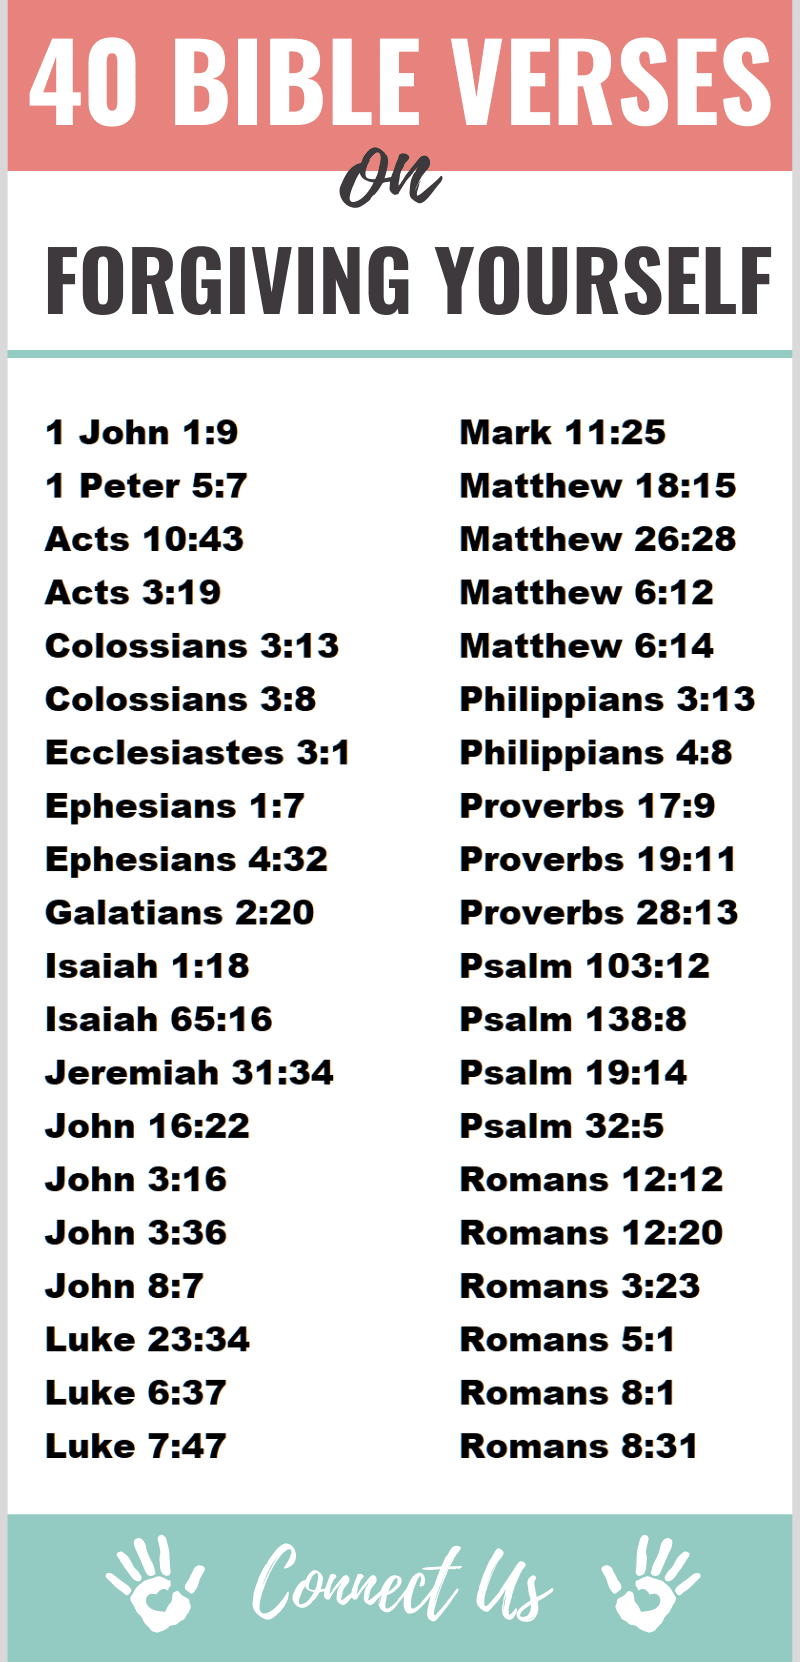 Bible Verses on Forgiving Yourself